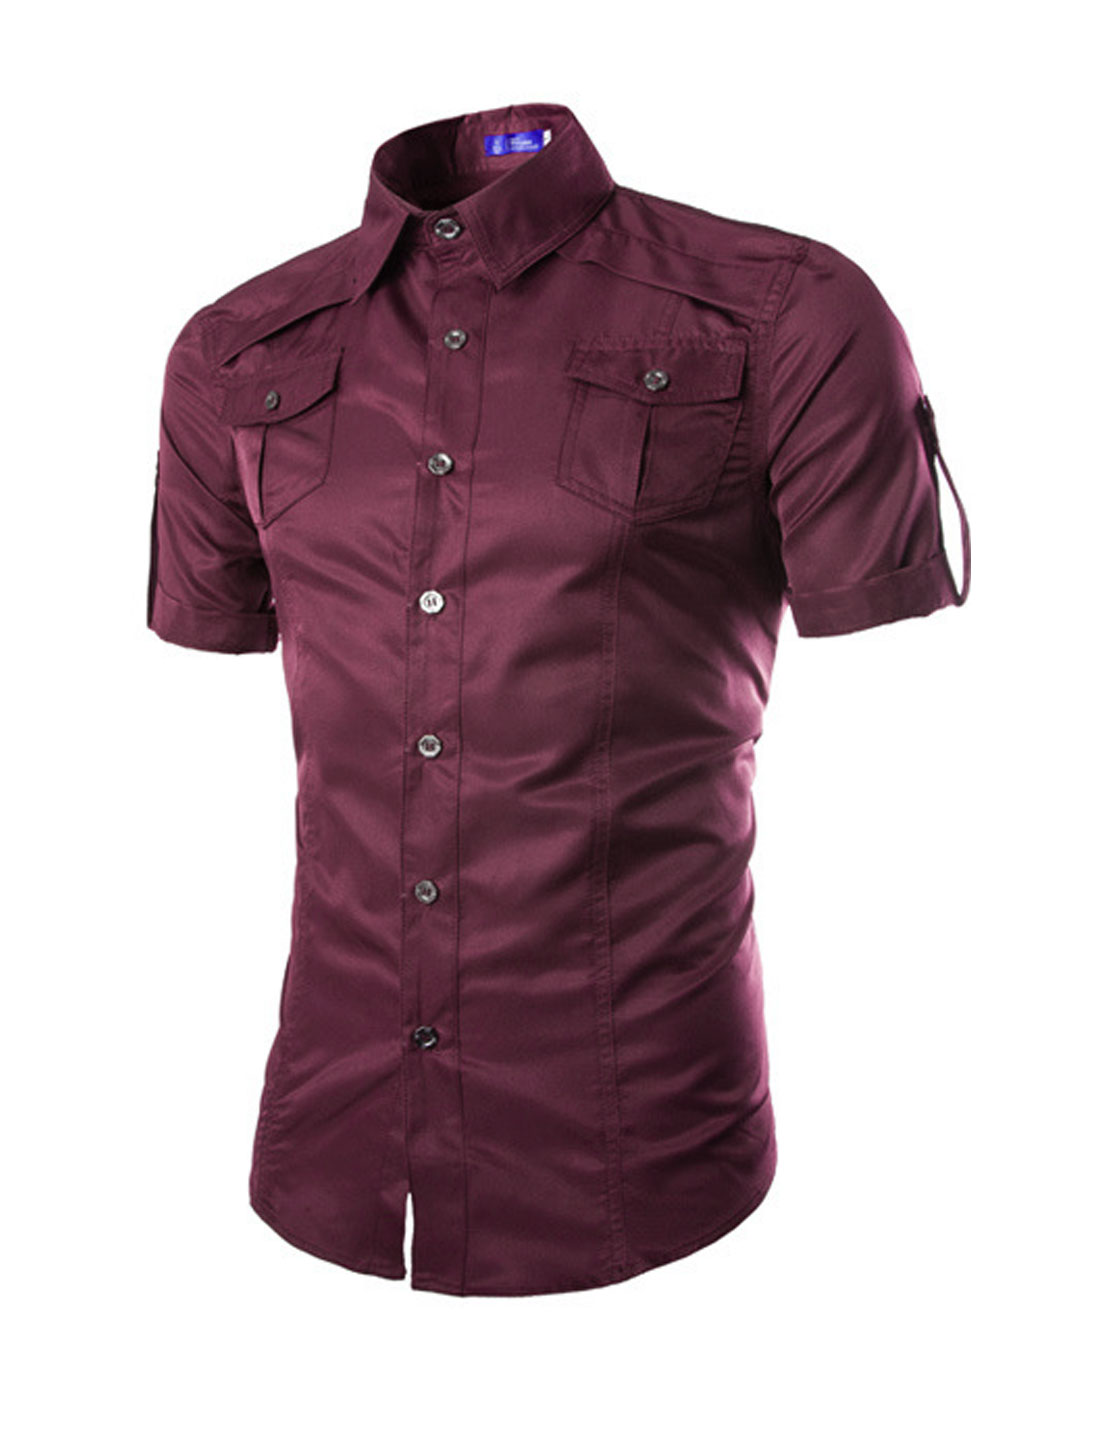 Men Point Collar Short Sleeves Button Closed Casual Shirts Burgundy M